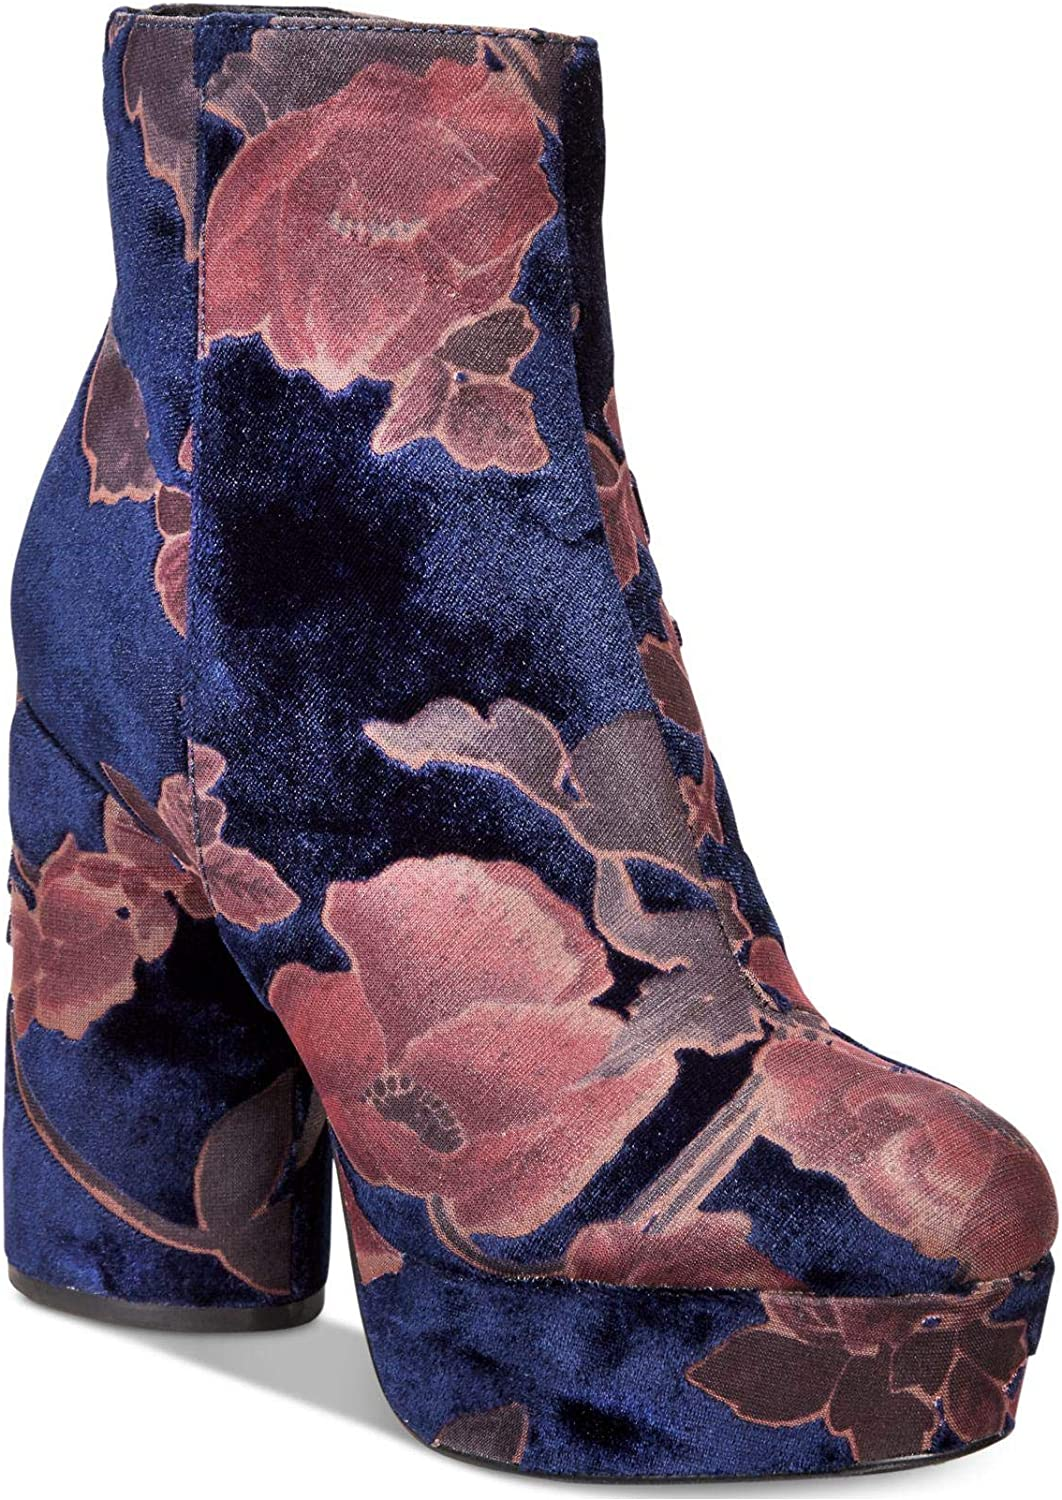 Call It Spring Womens Crini 6 Fabric Almond Toe Ankle Fashion Boots